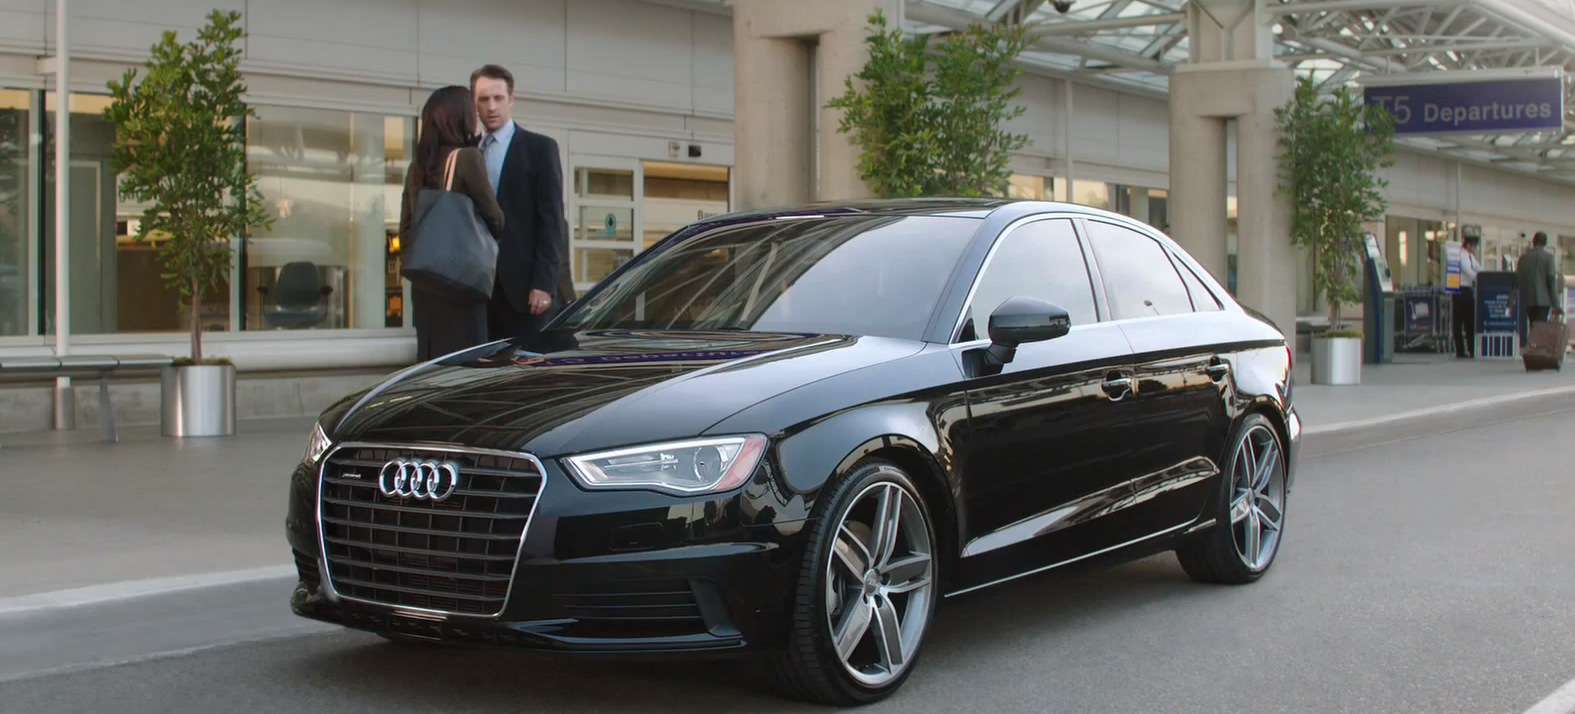 Audi A Commercial Driver Roleplaying Gross Parents - Audi commercial